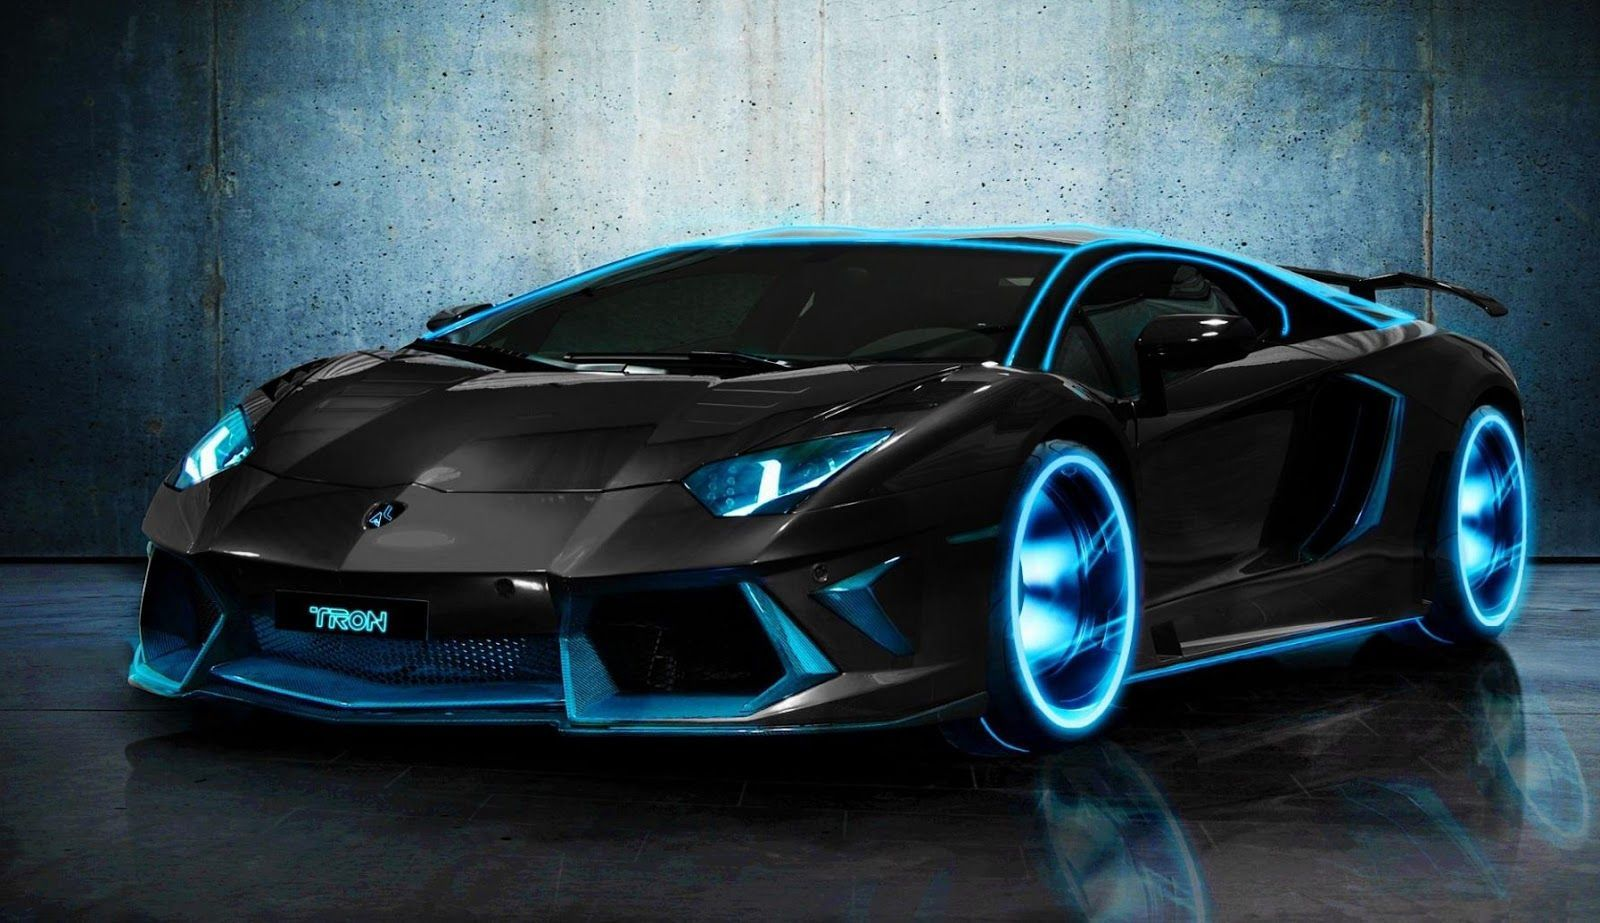 Hot Sport Cars Wallpapers Top Free Hot Sport Cars